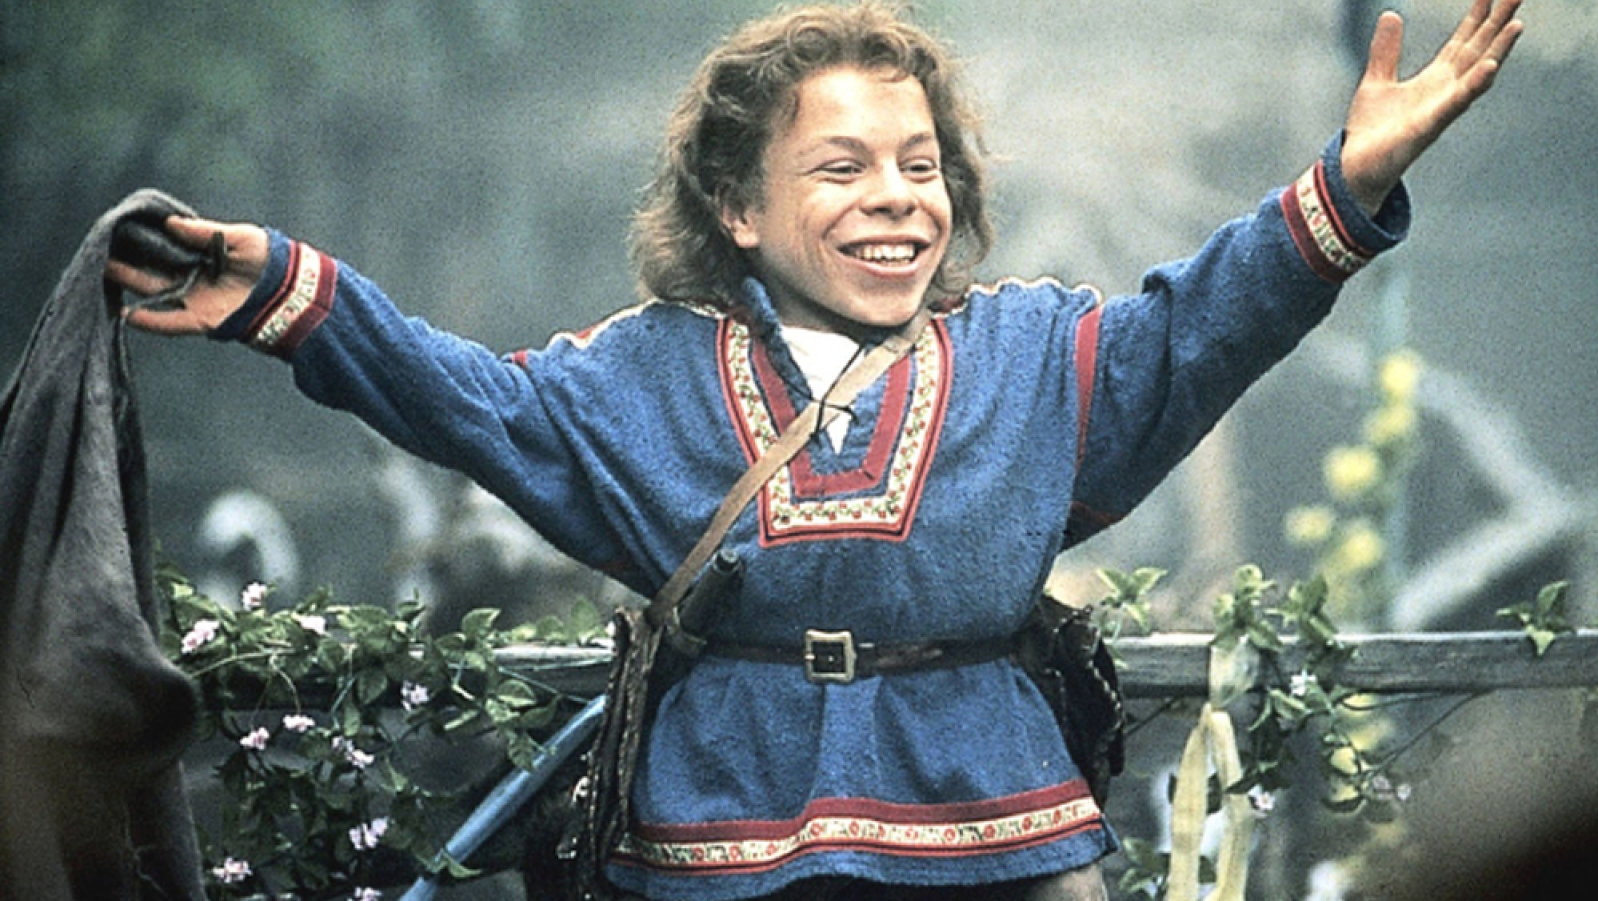 Ron Howard and George Lucas might reboot 'Willow' as series for Disney+ | DeviceDaily.com